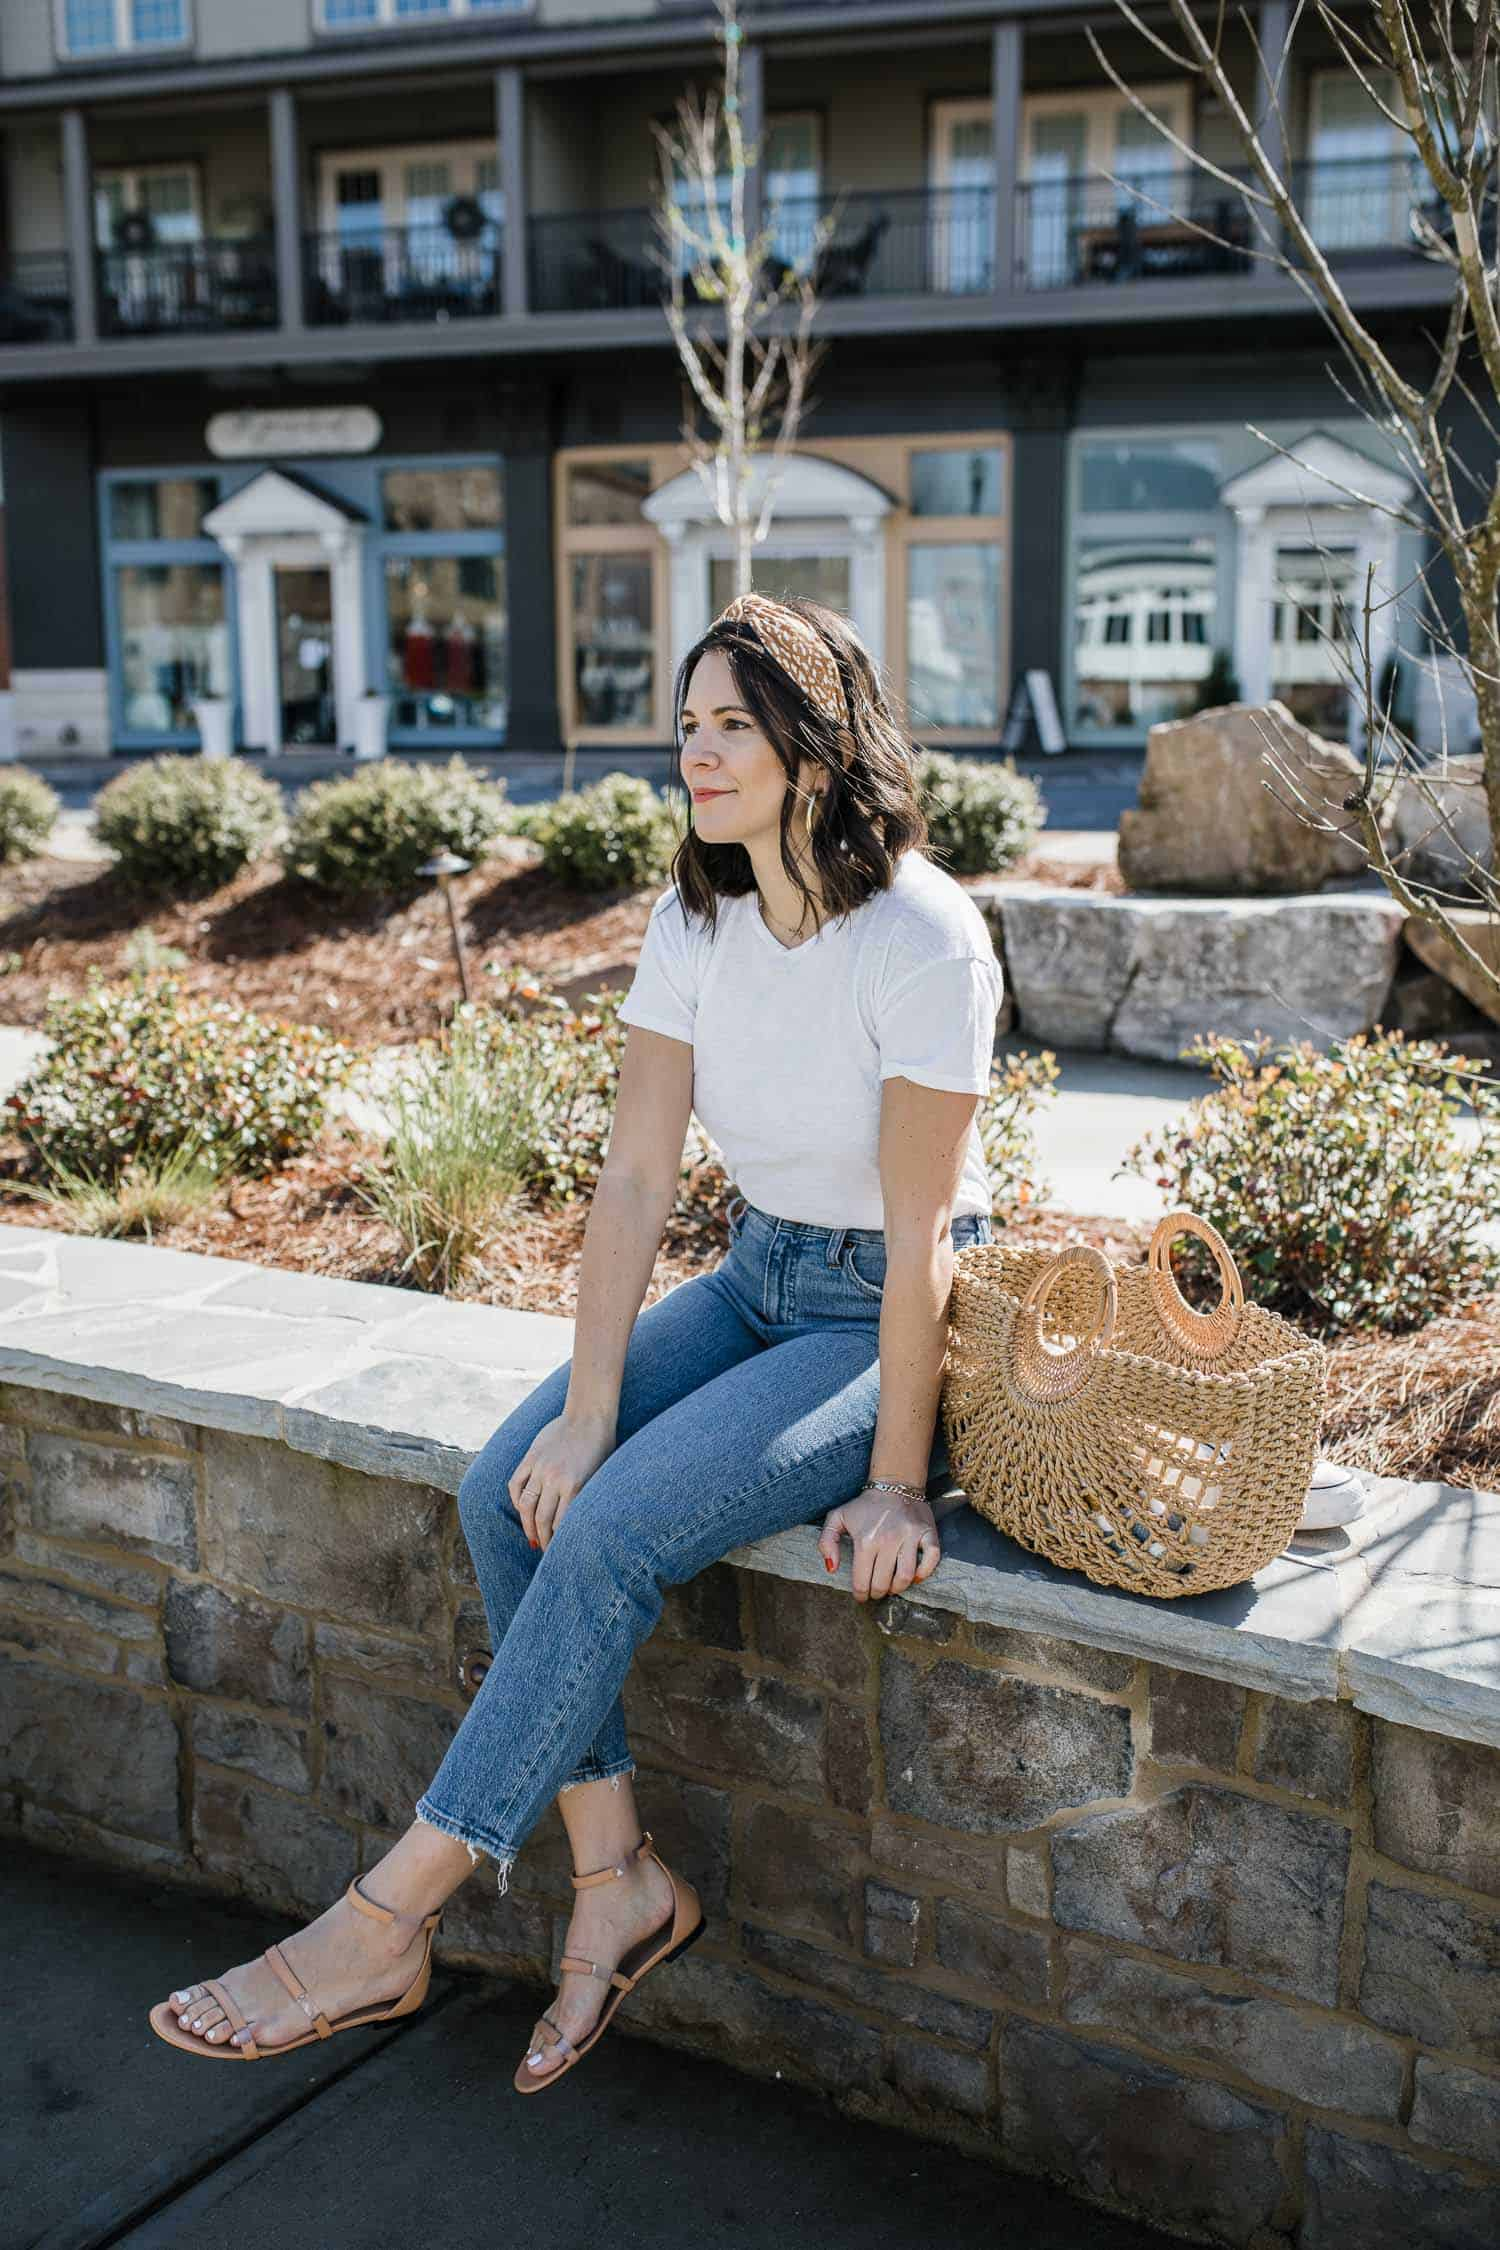 Jessica Camerata styles summer denim with a white tee and sandals